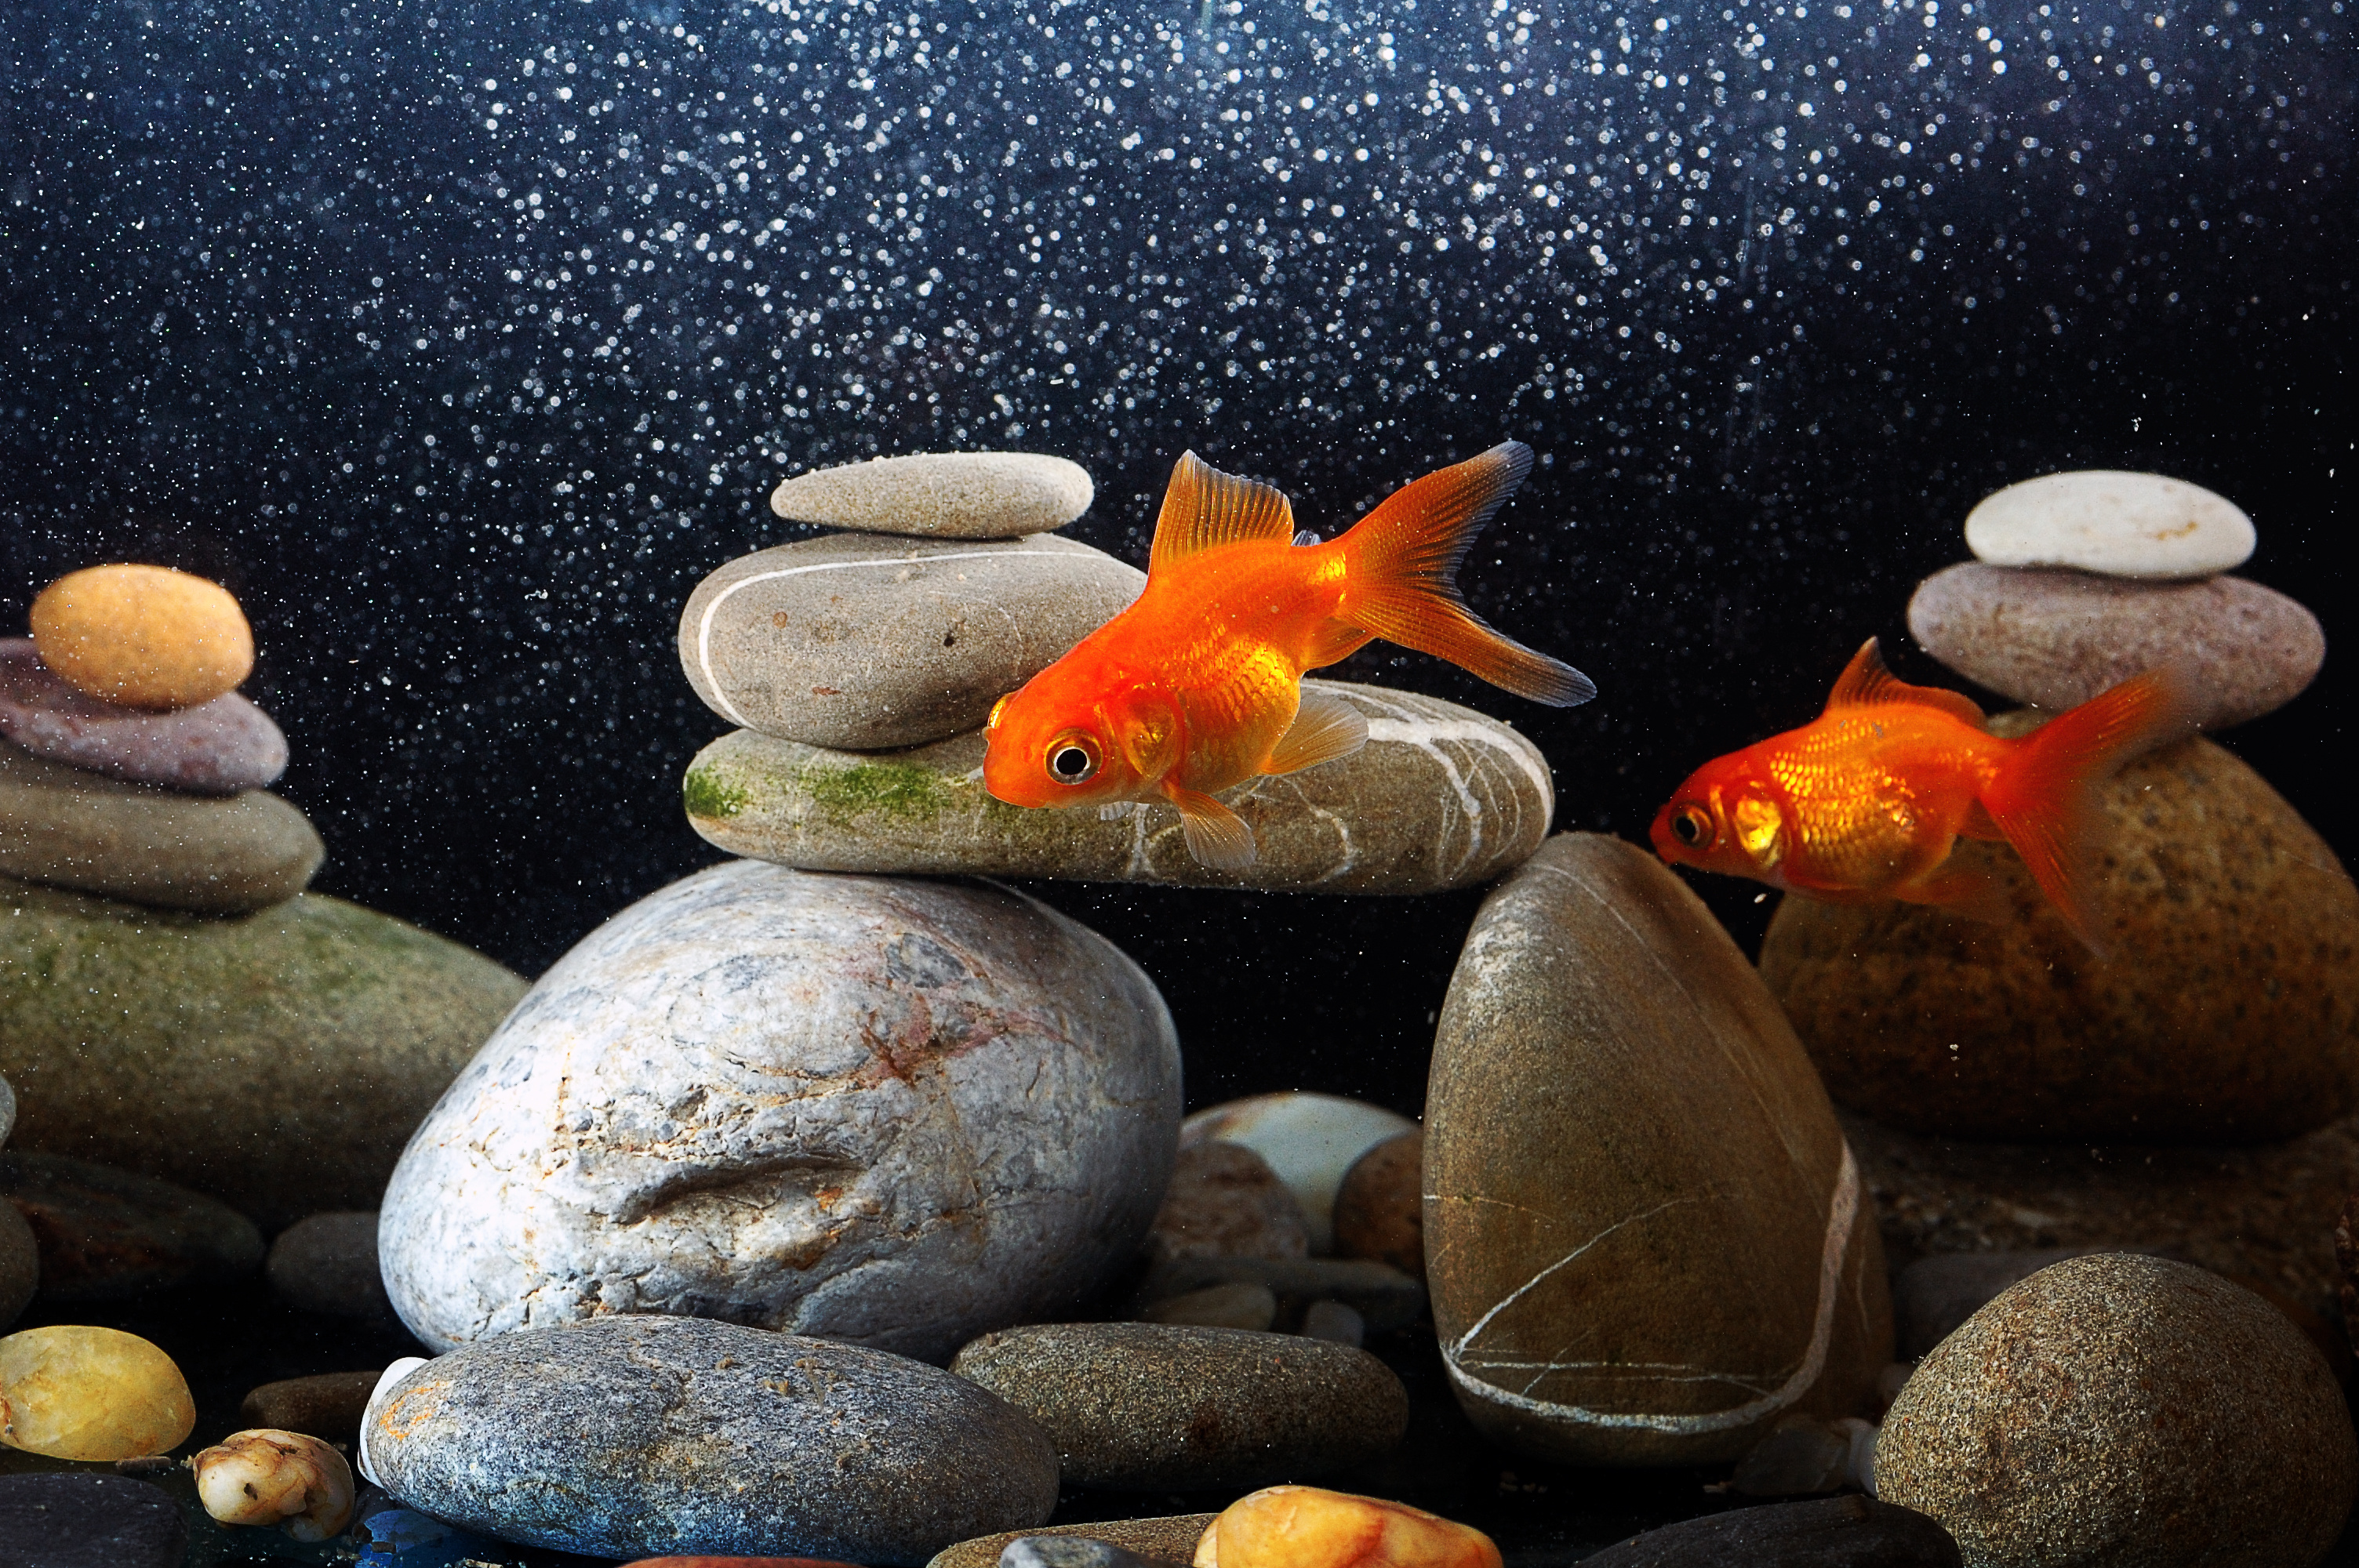 Aquarium Living: How Fish Sleep